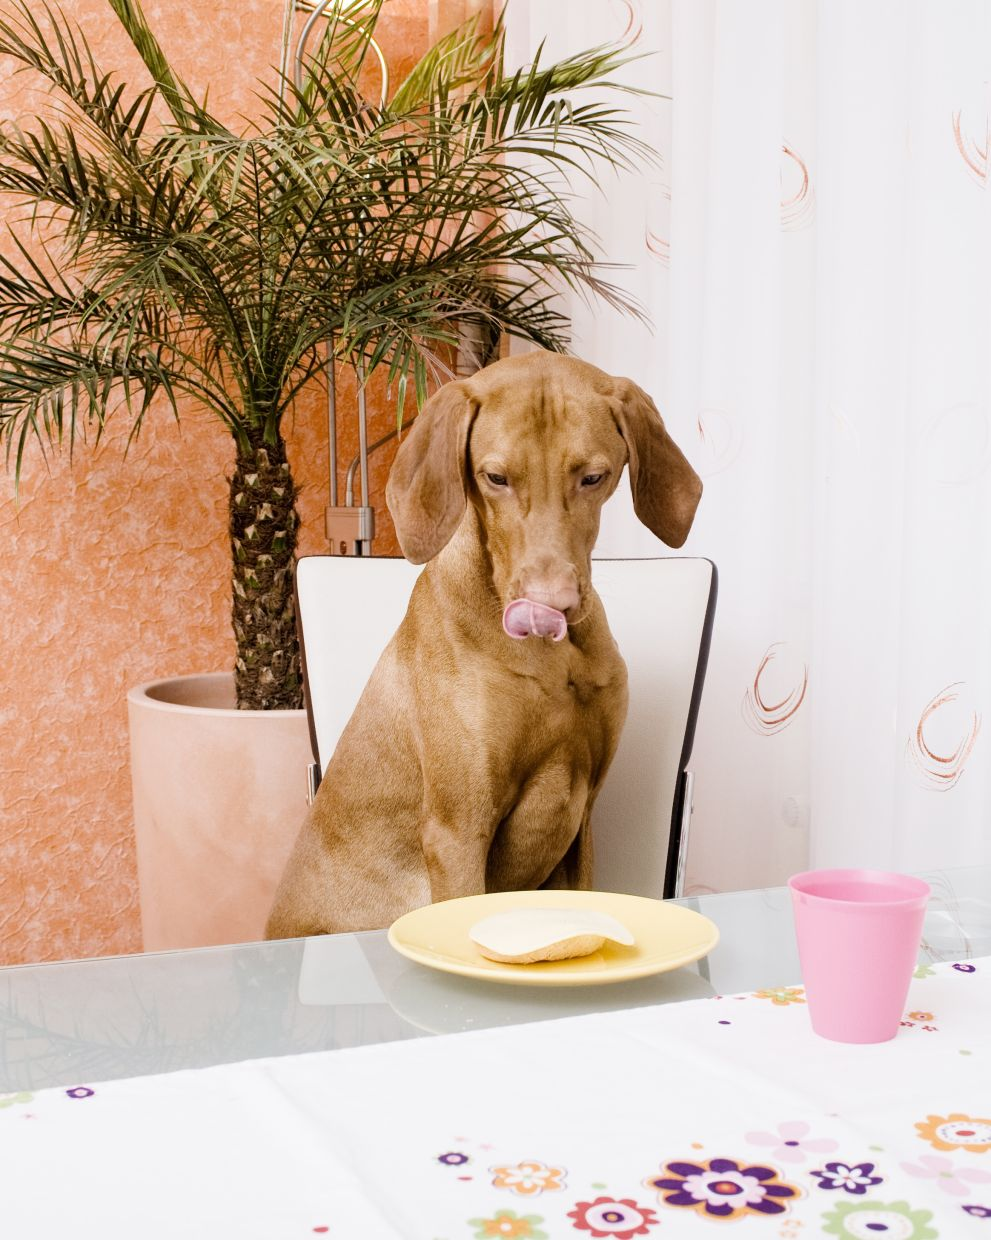 Not everything that your dog will eat is good for them. Photo: dpa